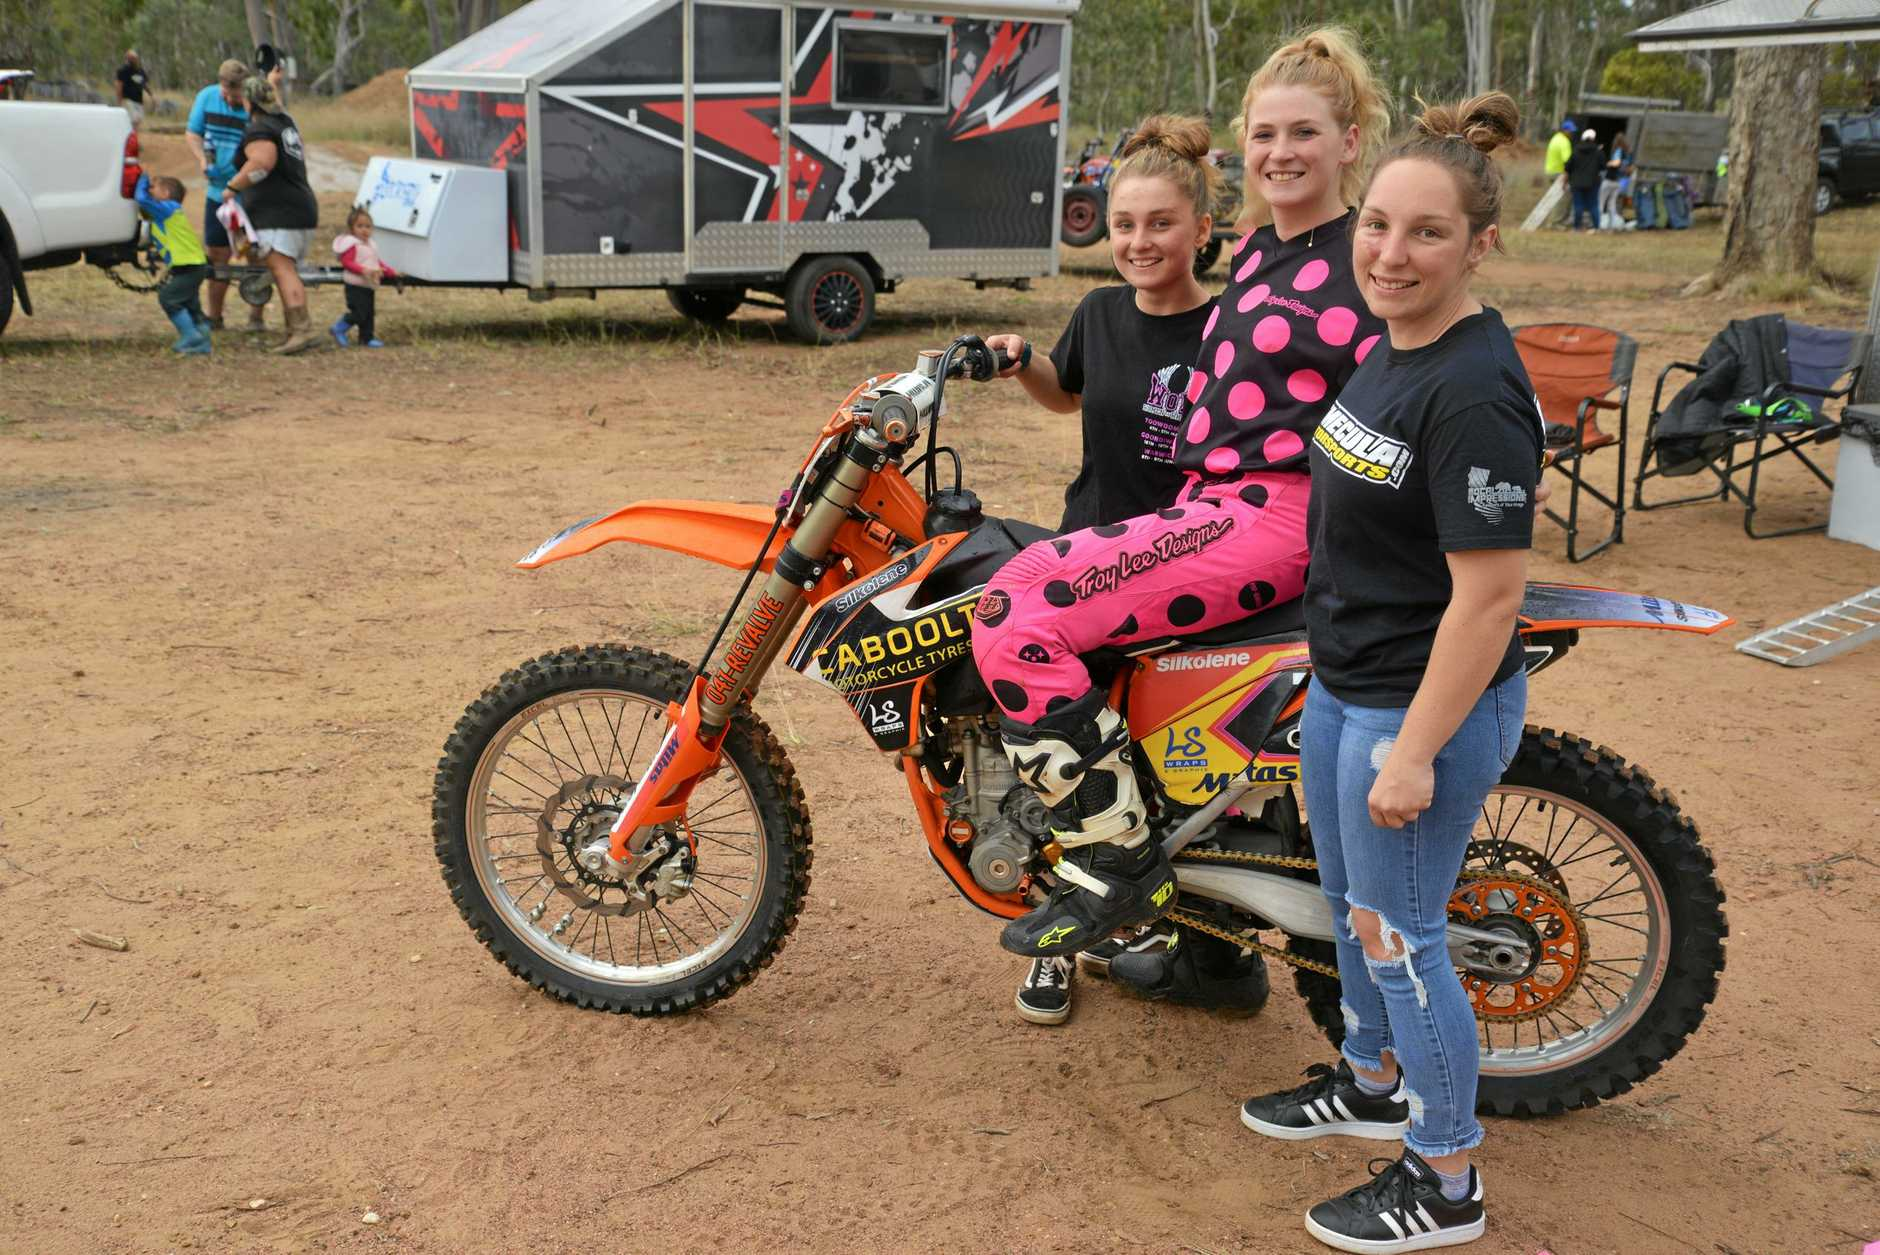 SERIES RIDERS: Jasmine Stagg, Lauren Jones and Taryn Cox after placing in the Women on Wheels series round at Morgan Park, Warwick.